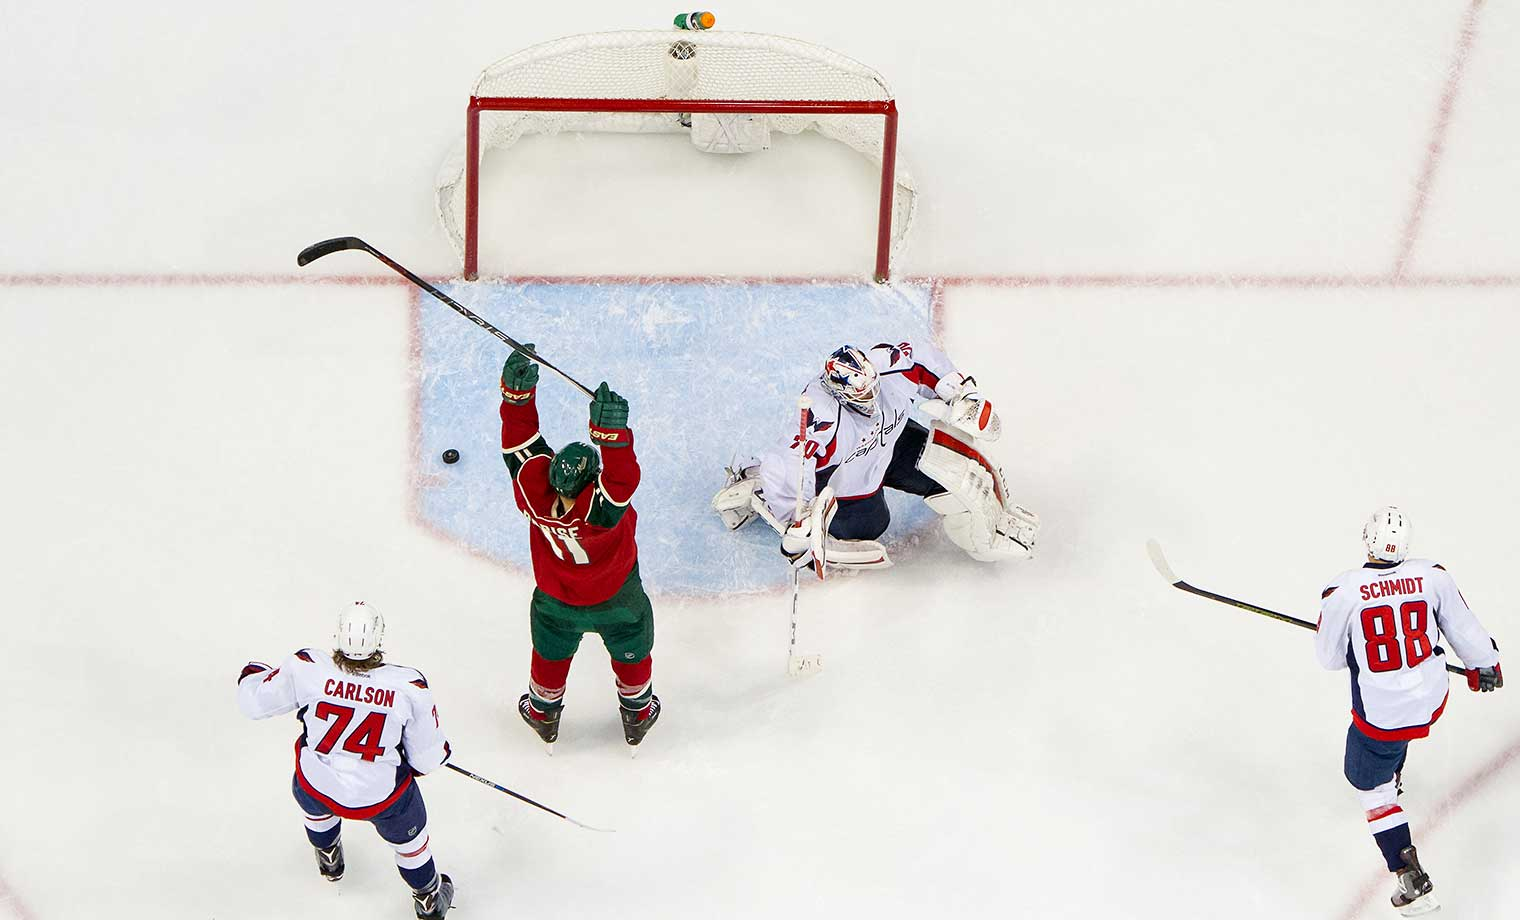 Zach Parise of the Minnesota Wild celebrates after Ryan Suter scored against the Washington Capitals.